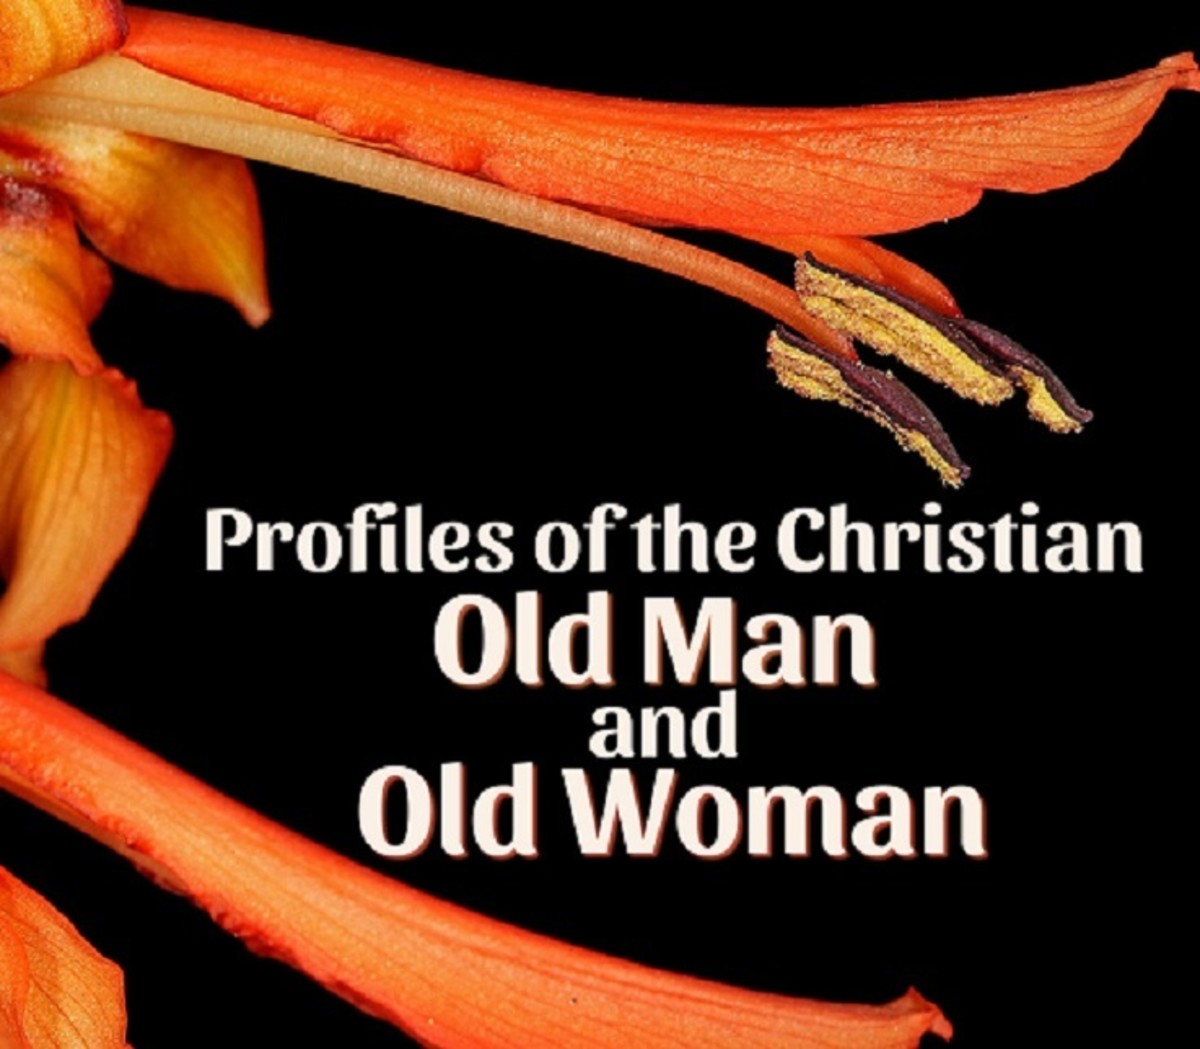 Profiles of the Christian Old Man and Woman